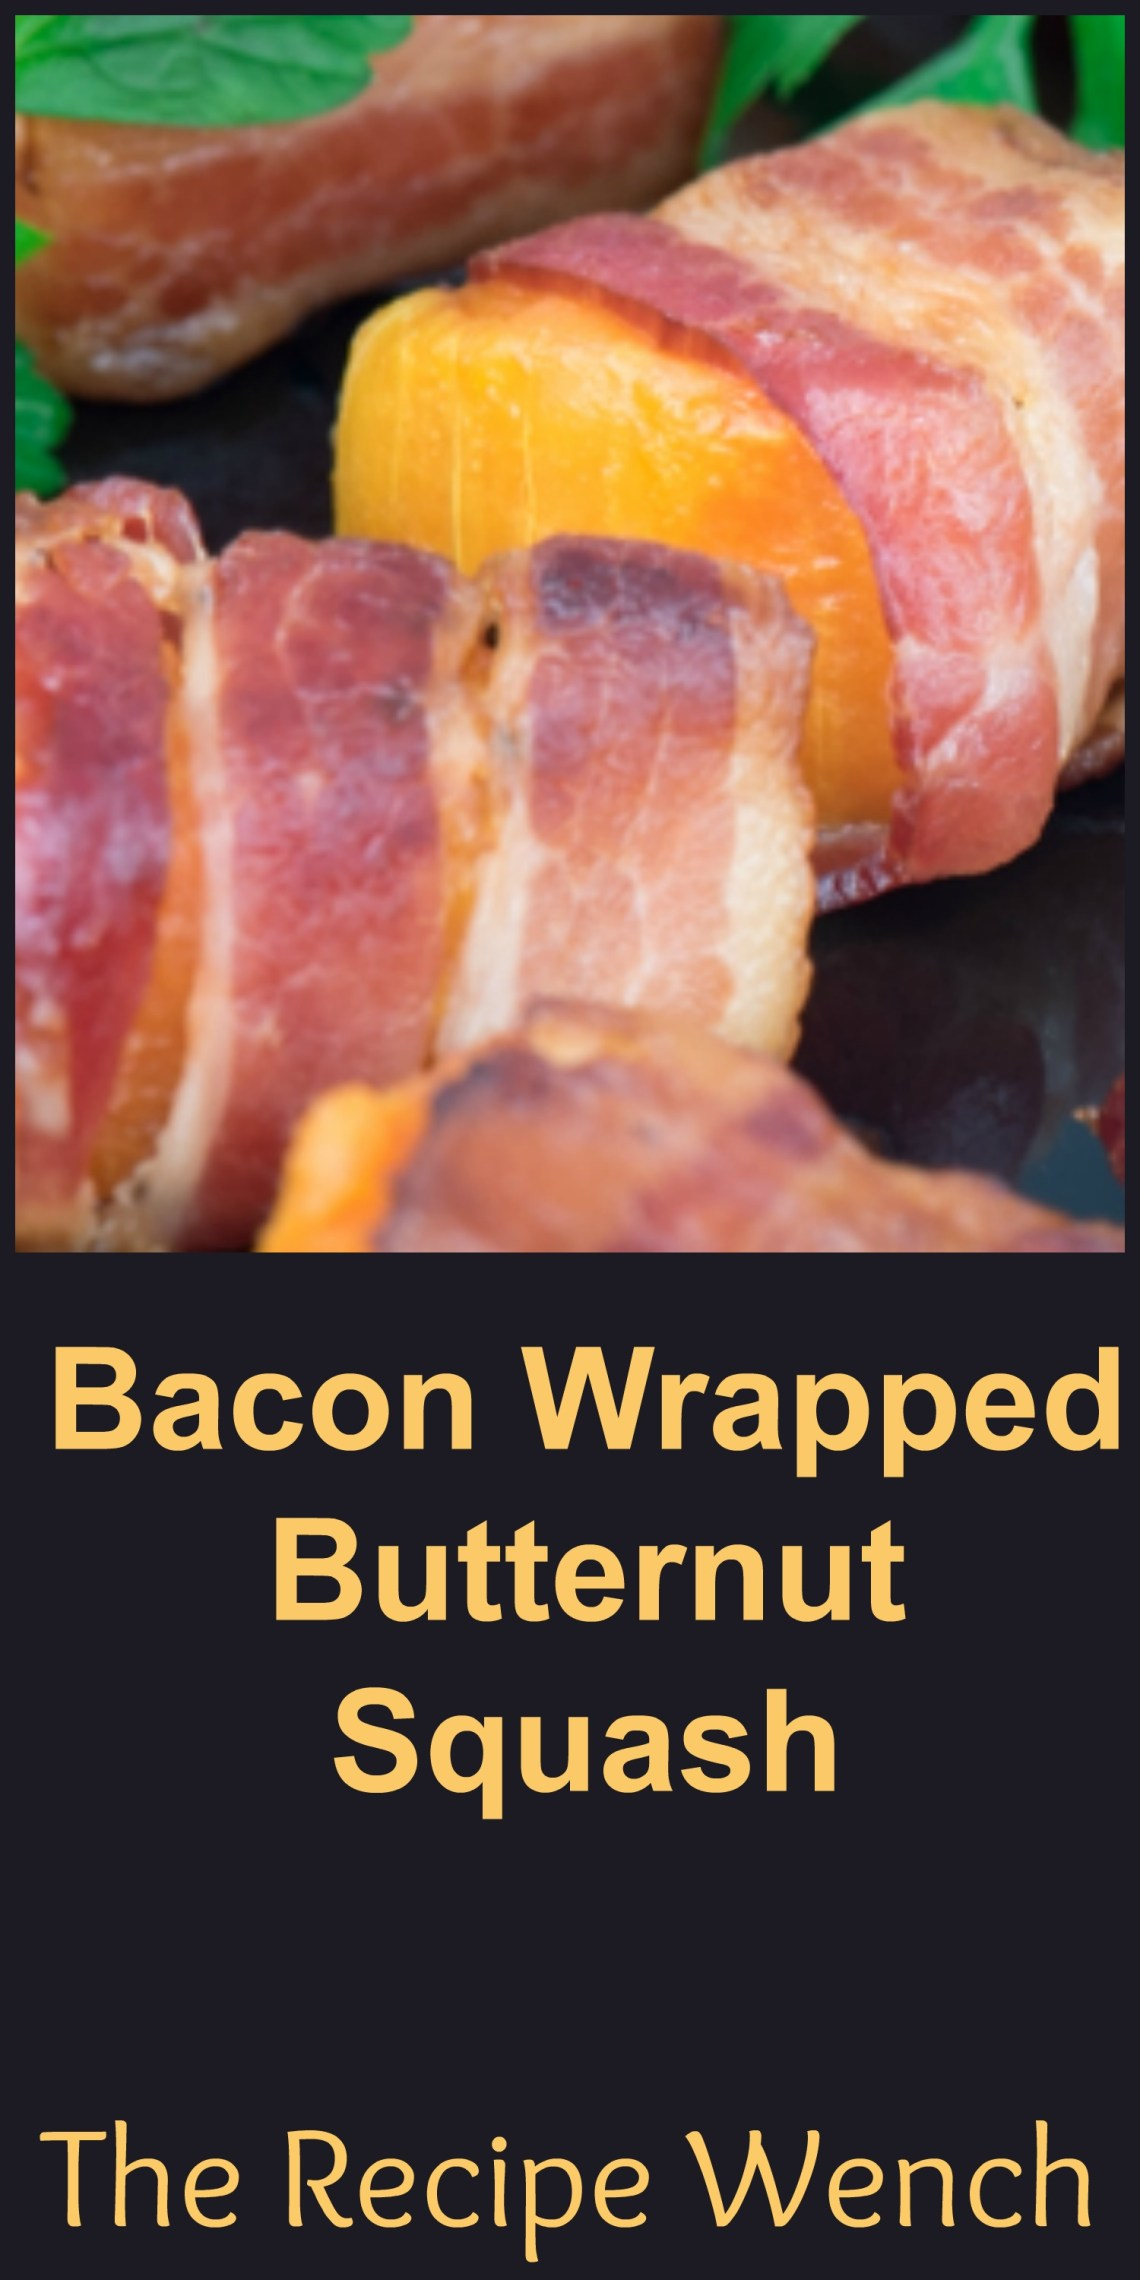 This bacon and butternut squash appetizer is a tasty combination of flavors and textures -- creamy, sweet butternut squash pairs excellently with crunchy, salty, smoky bacon. | The Recipe Wench